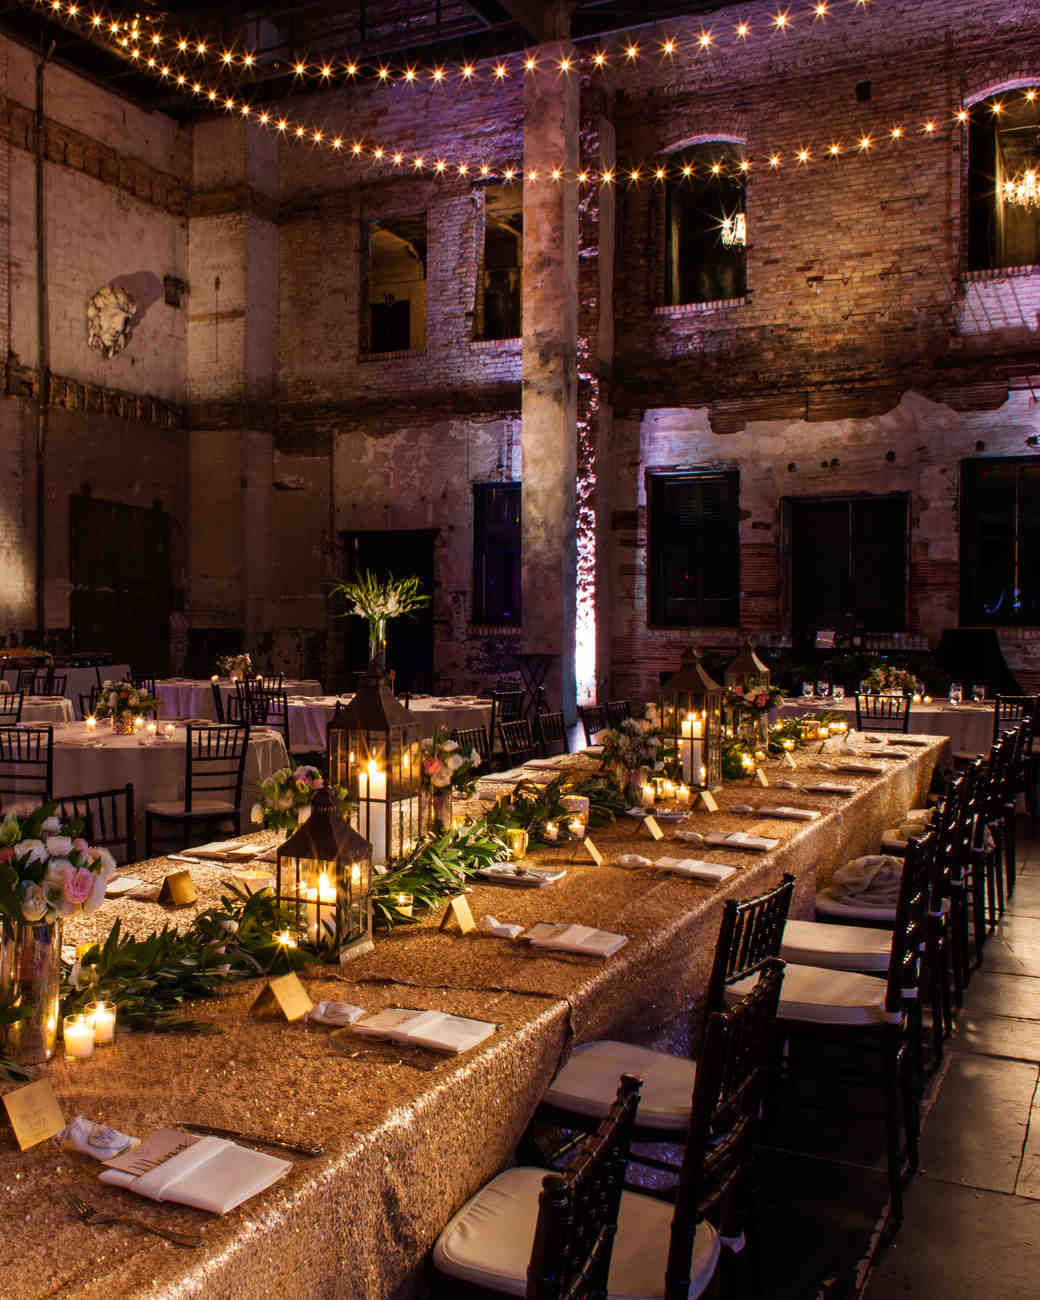 Restored Warehouses Where You Can Tie the Knot | Martha Stewart Weddings & Restored Warehouses Where You Can Tie the Knot | Martha Stewart ... azcodes.com